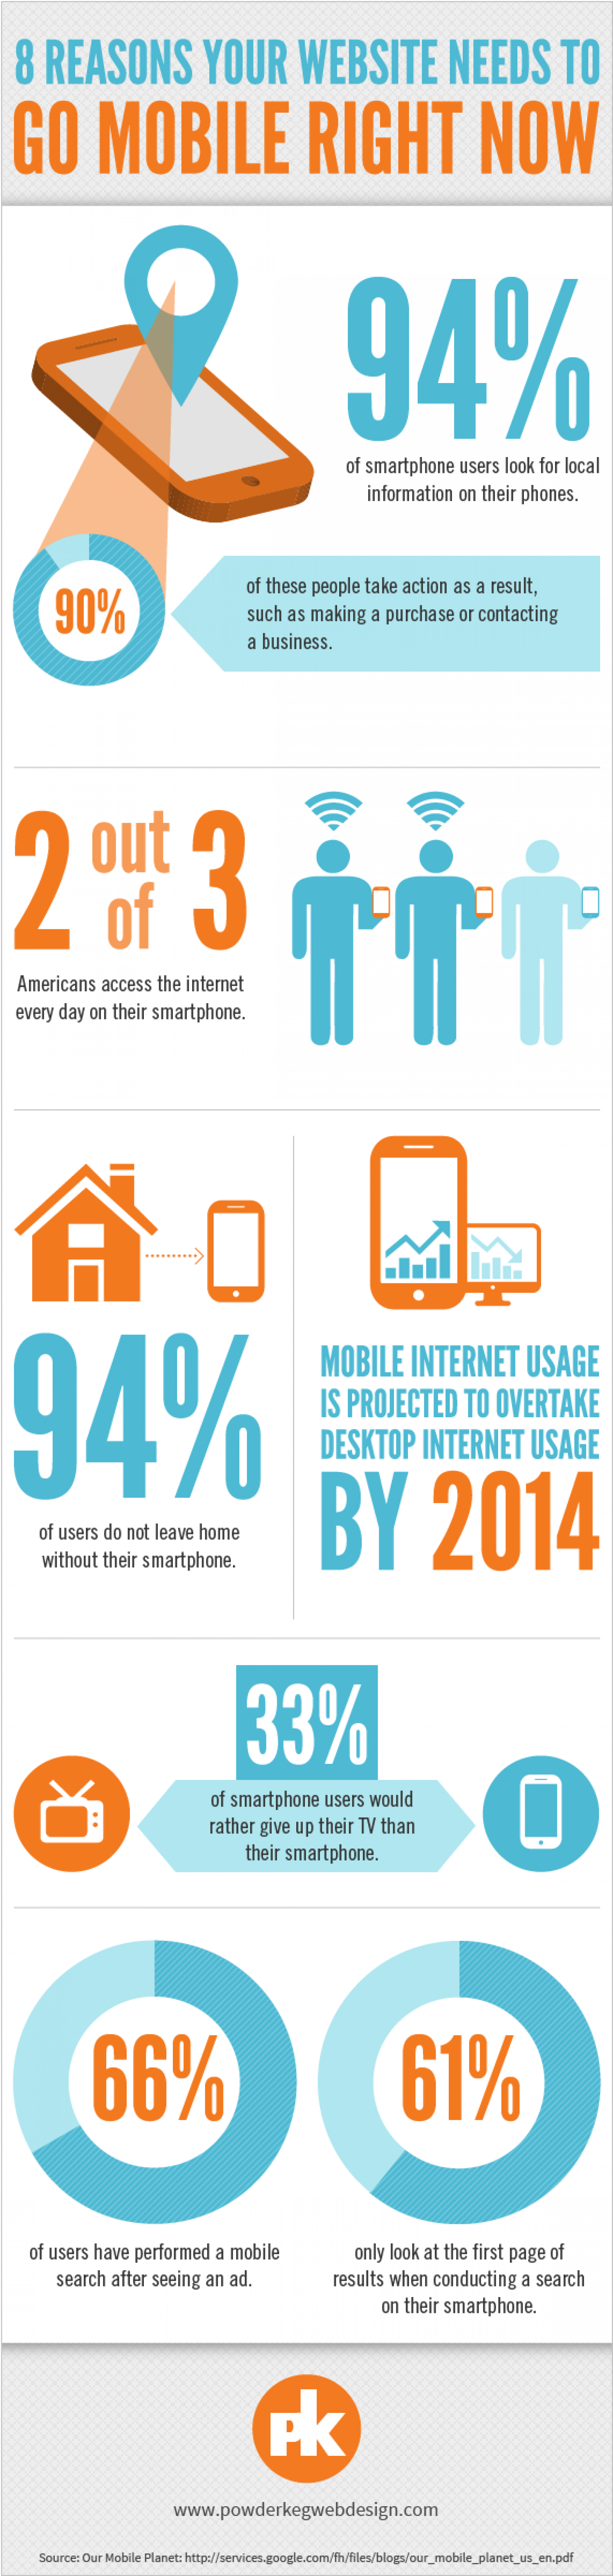 8 Reasons Your Website Should Go Mobile Right Now Infographic